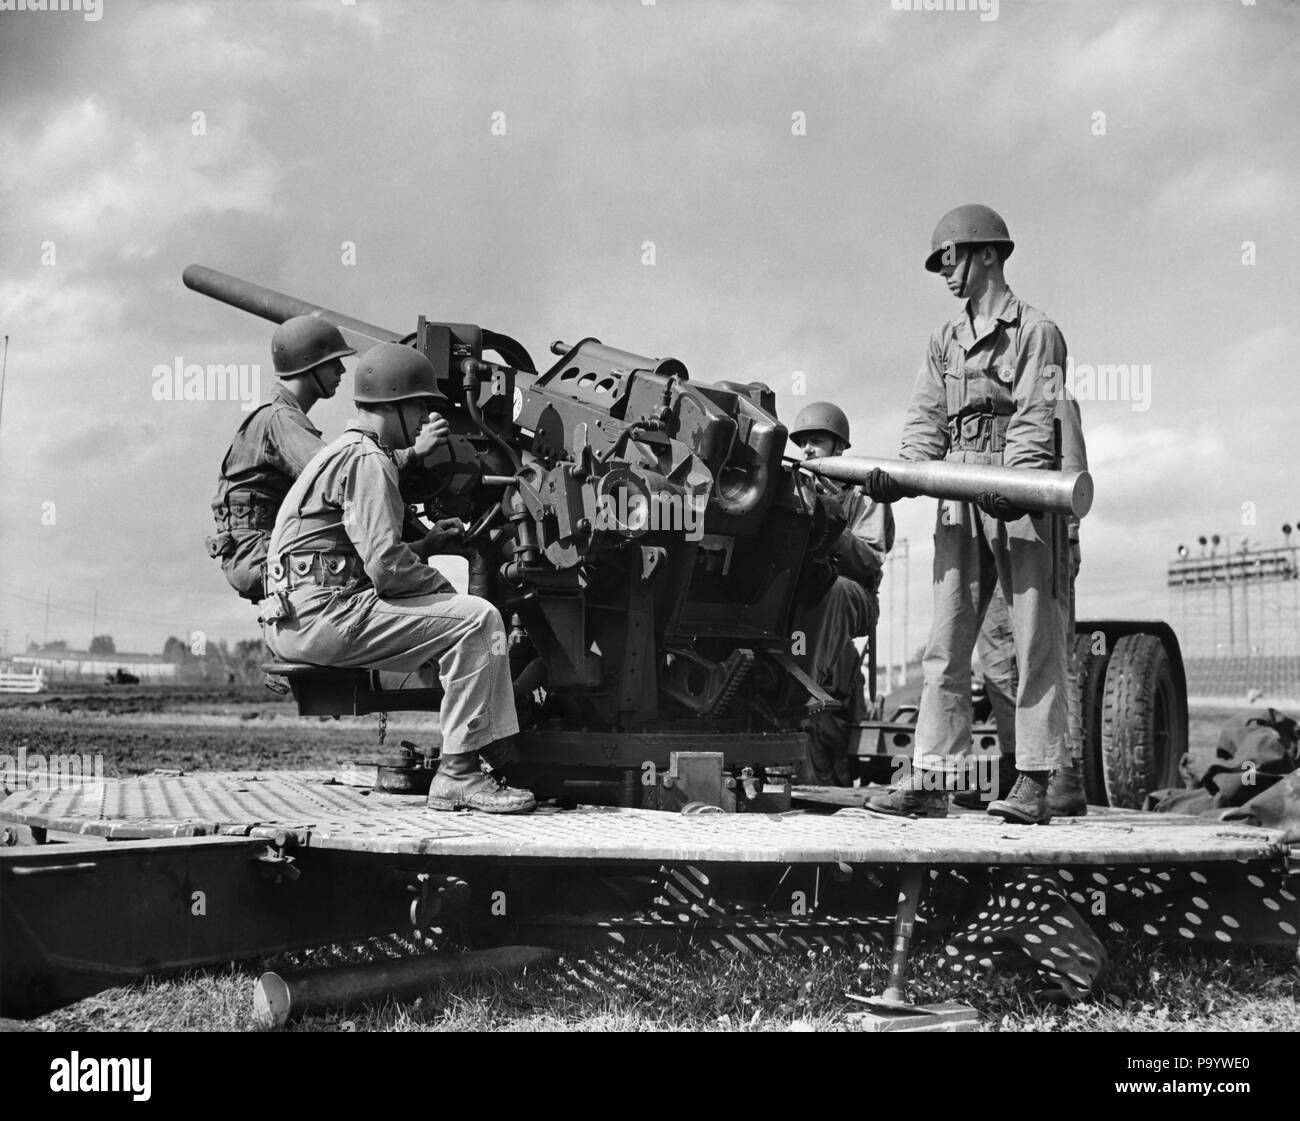 1940s CREW OF FOUR WORLD WAR II SOLDIERS MANNING ARTILLERY CANNON LOADING SHELL INTO BREECH OF GUN - q74716 CPC001 HARS LOADING STRENGTH COURAGE TRIO WORLD WARS WORLD WAR WORLD WAR TWO WORLD WAR II INTO OCCUPATIONS UNIFORMS WORLD WAR 2 AMMUNITION MANNING CONFLICTING FIREARM YOUNG ADULT MAN ARTILLERY BATTLING BLACK AND WHITE CAUCASIAN ETHNICITY OLD FASHIONED - Stock Image